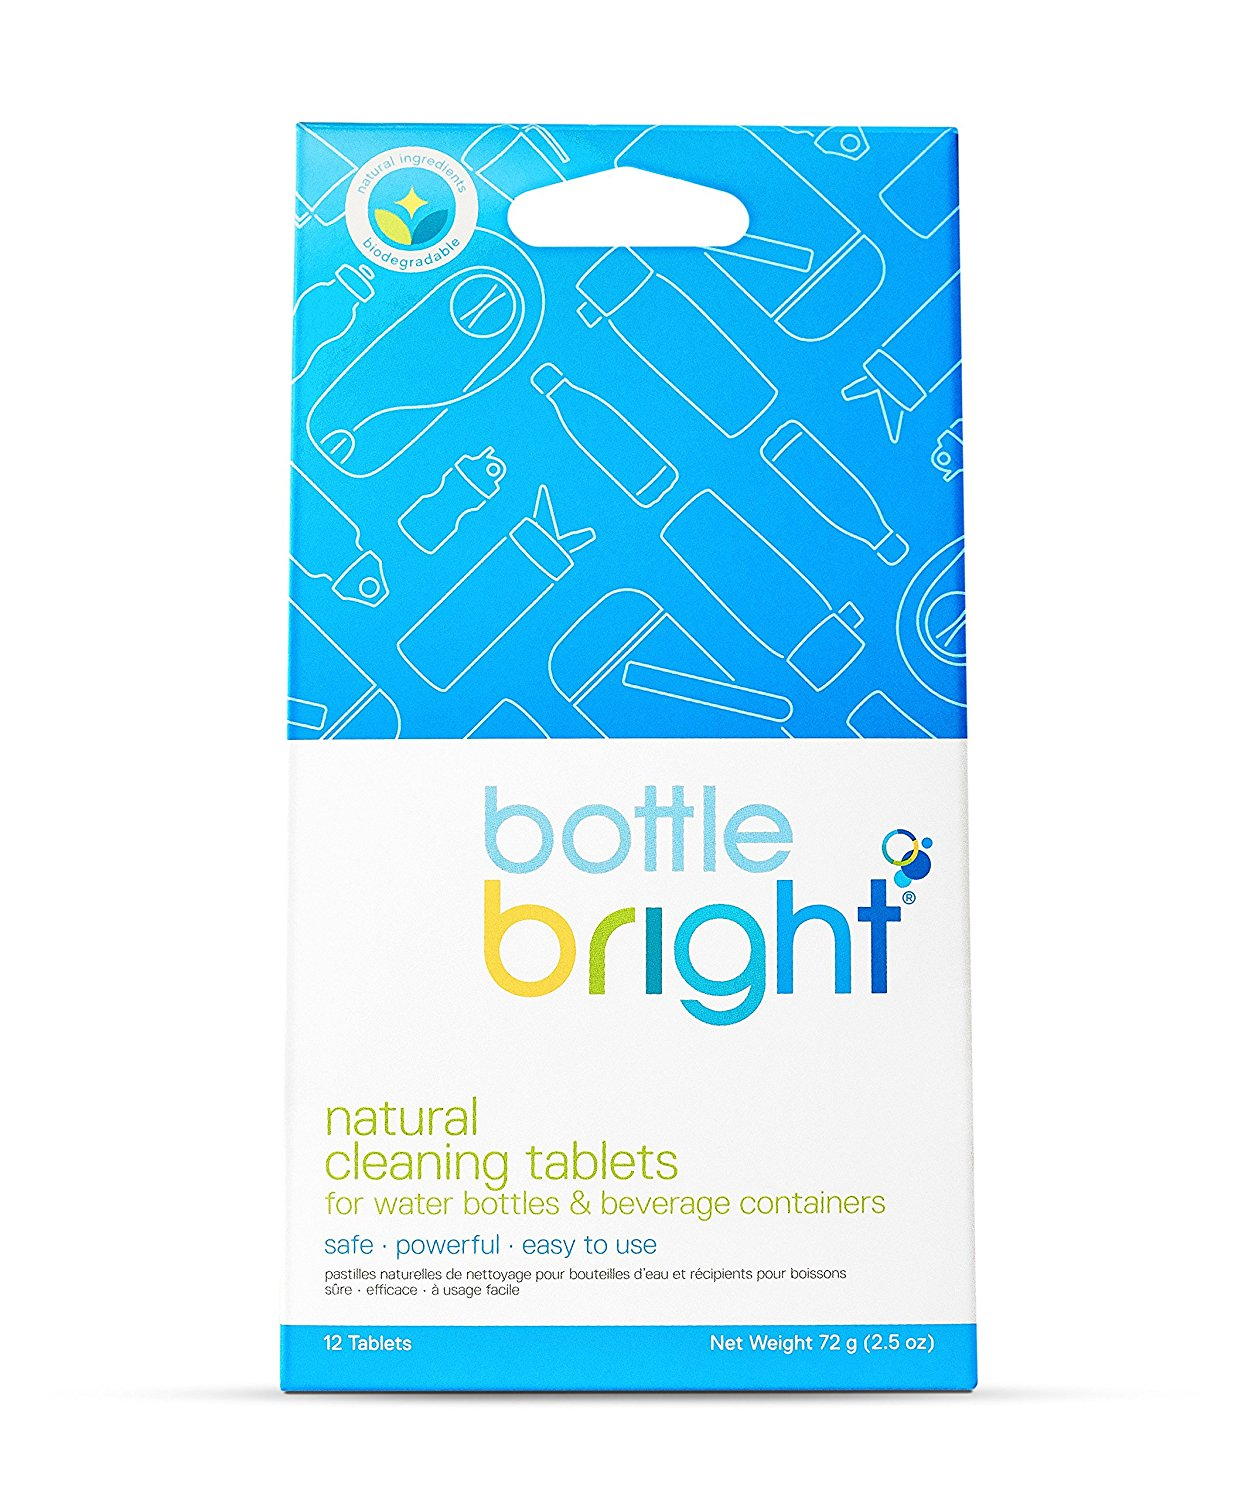 Amazon Best Selling Cleaning Product, Water Bottle Cleaning Tablets